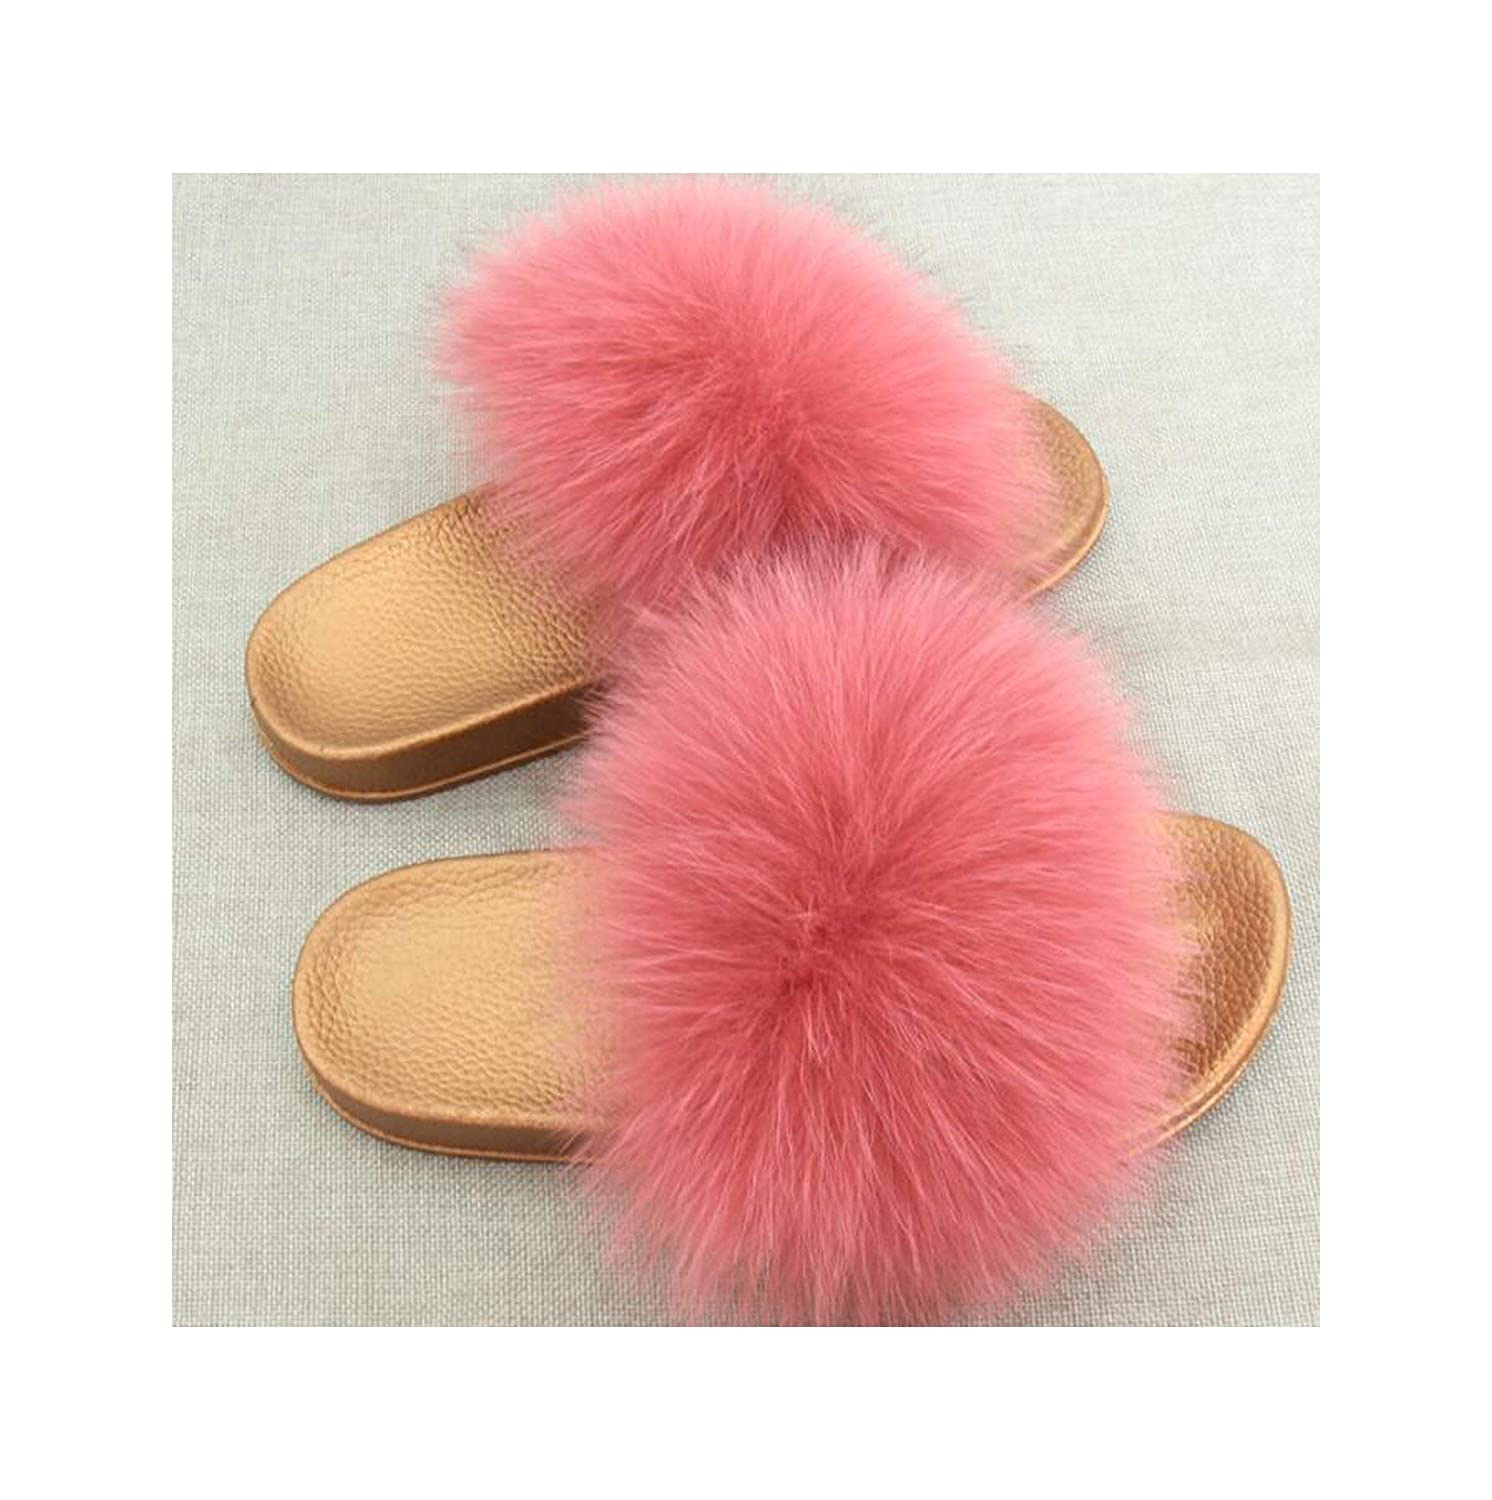 2 Zalin Women's Summer Genuine Fox Fur Slippers PVC Flat Indoor Non-Slip Slippers Furry Slippers